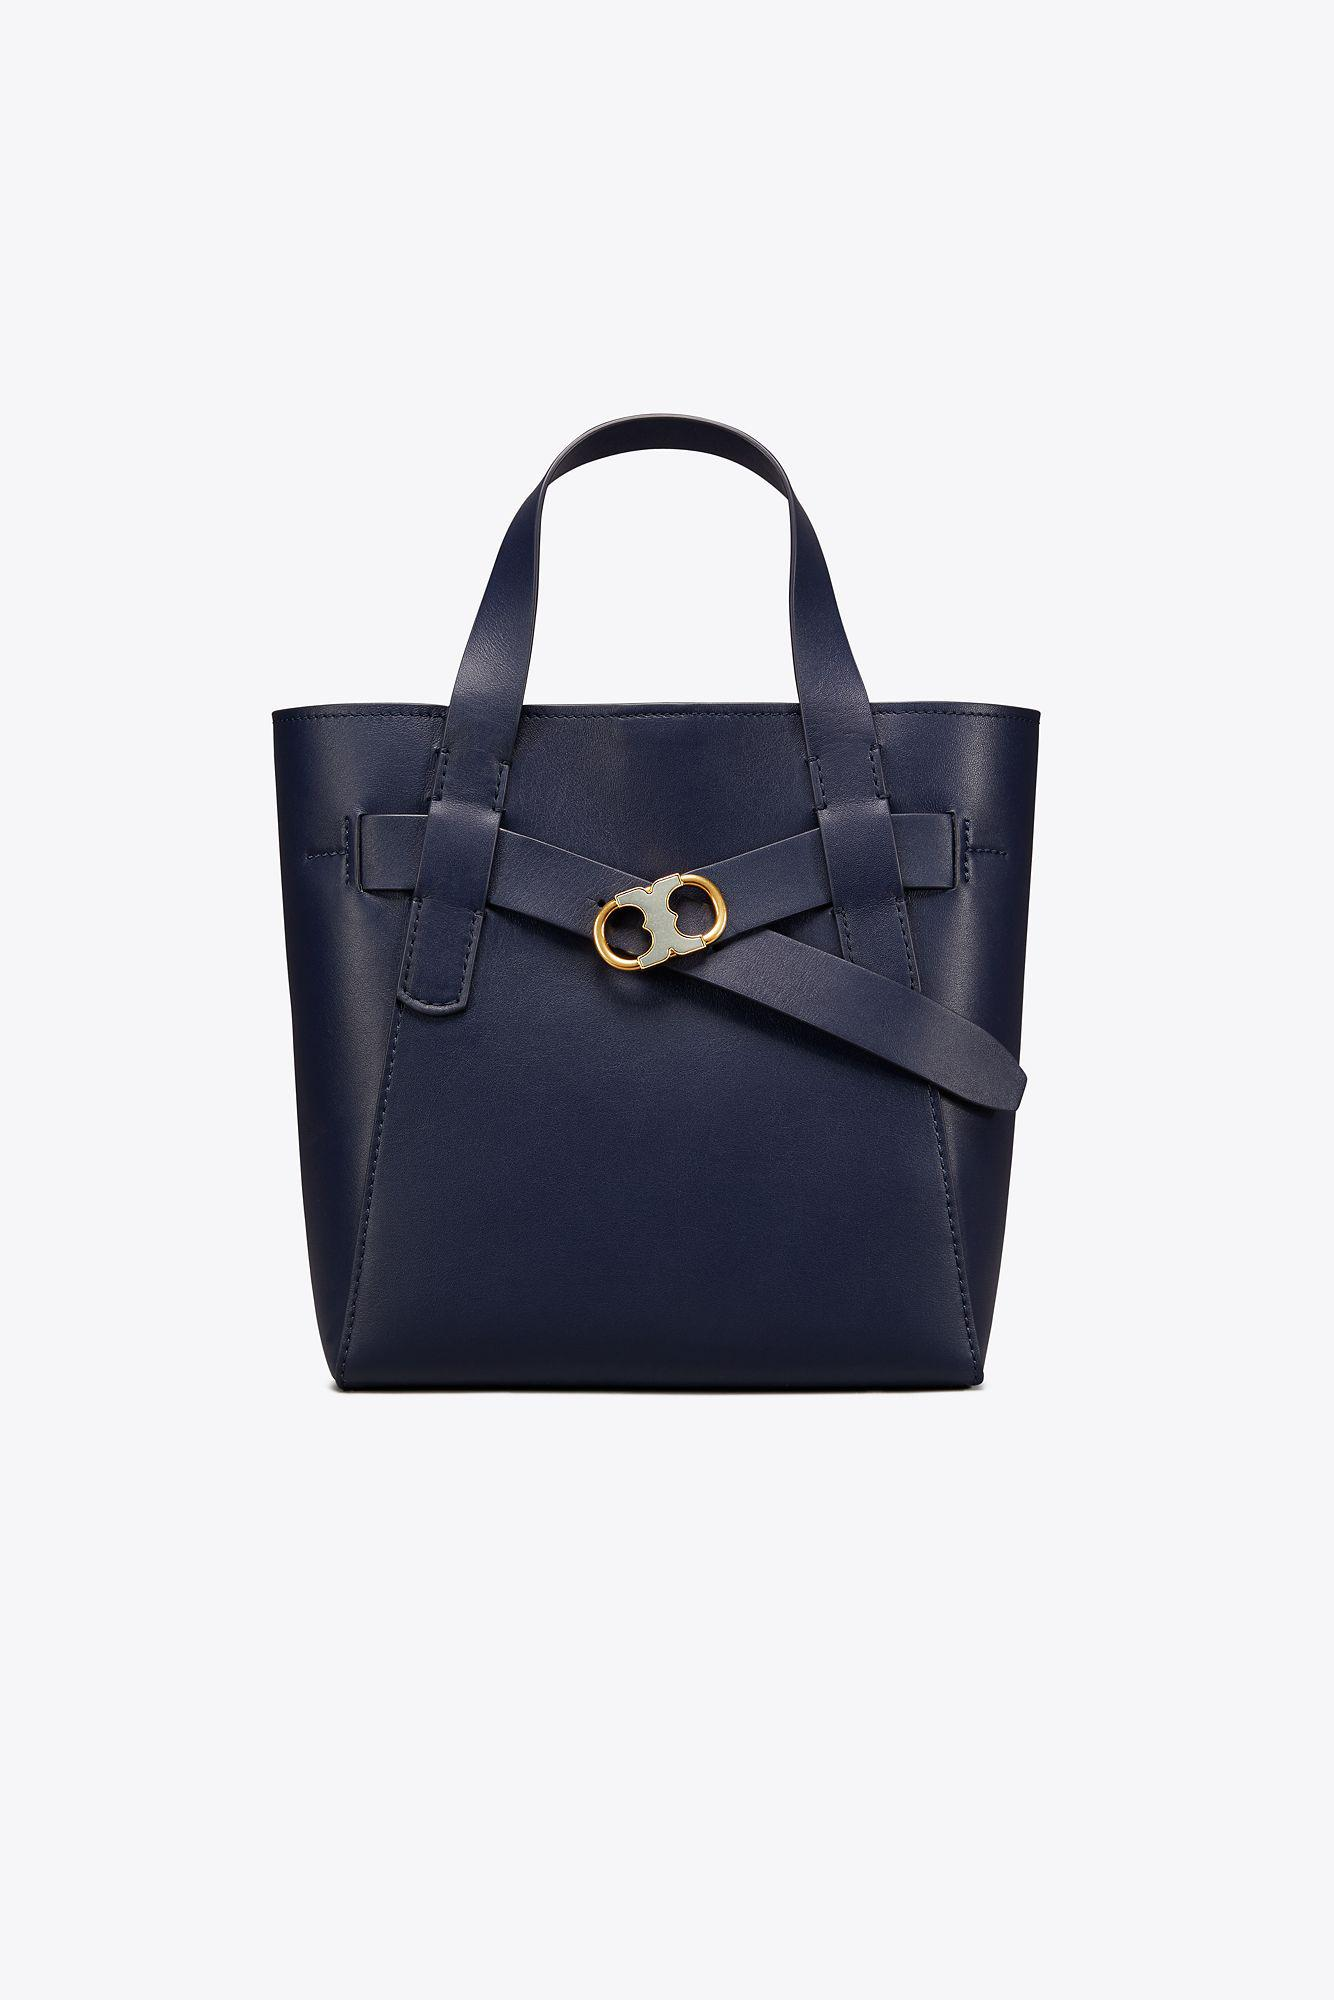 5cc21fe34dcc Lyst - Tory Burch Gemini Link Leather Small Tote in Blue